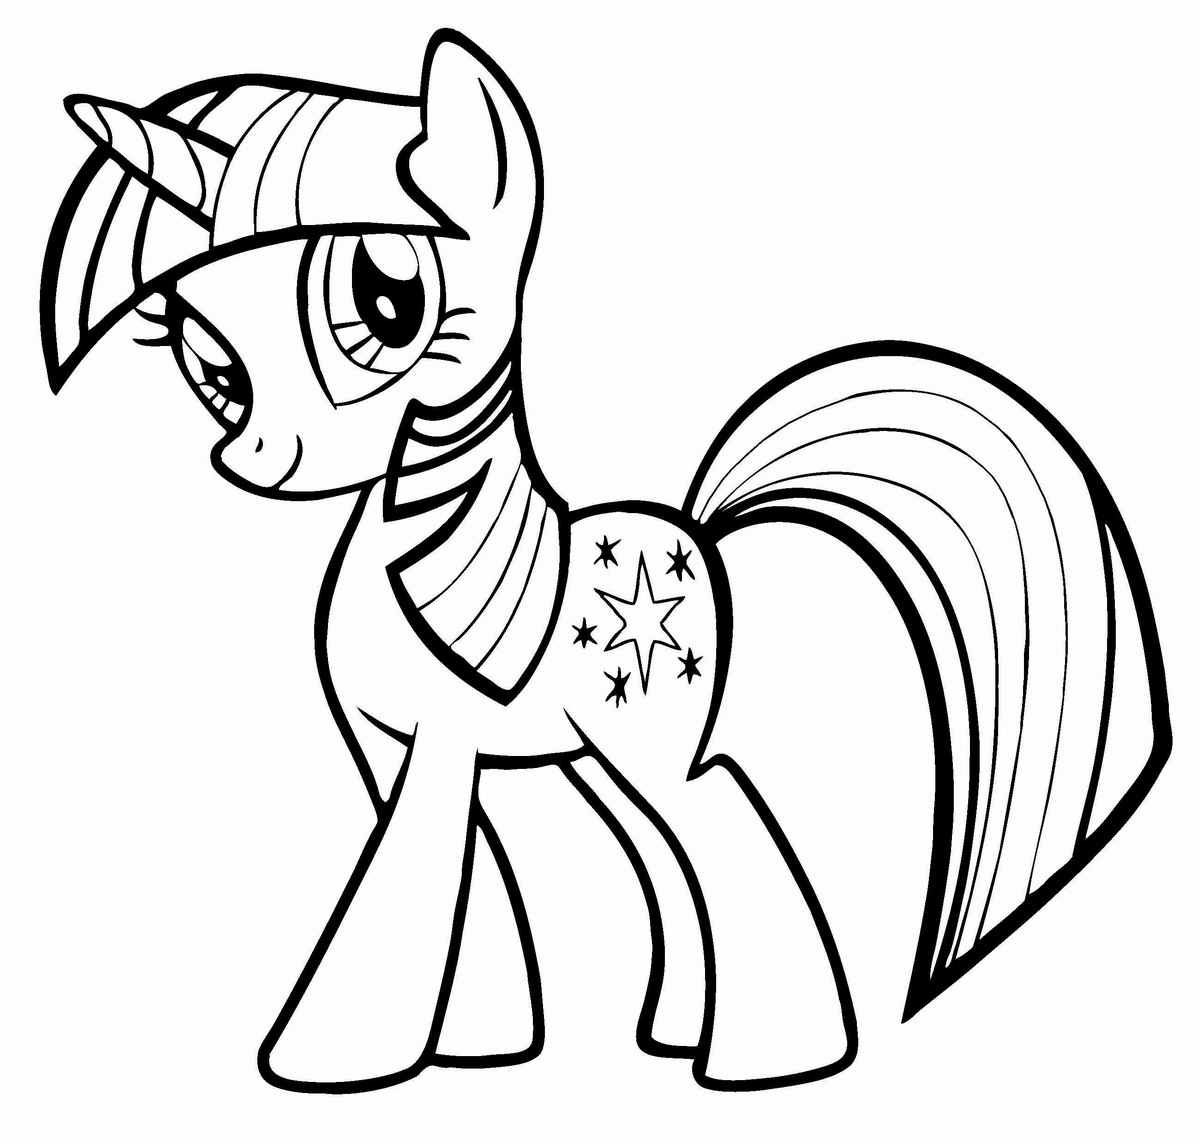 mlp color pages baby my little pony coloring pages at getcoloringscom color mlp pages